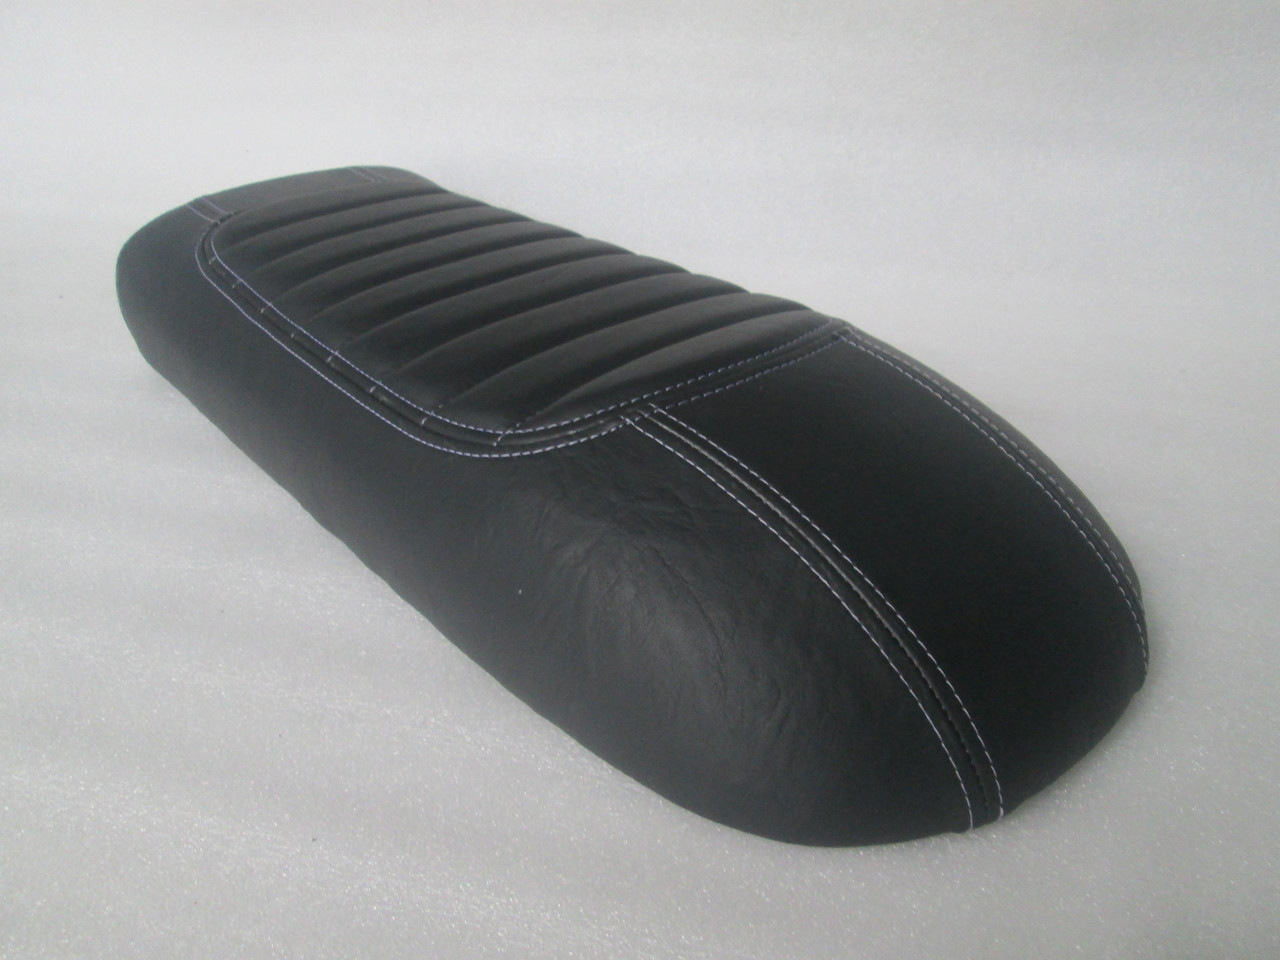 1975 - 1978 Honda CB750F Super sport cafe racer race motorcycle seat with Modified Seat Pan #4215